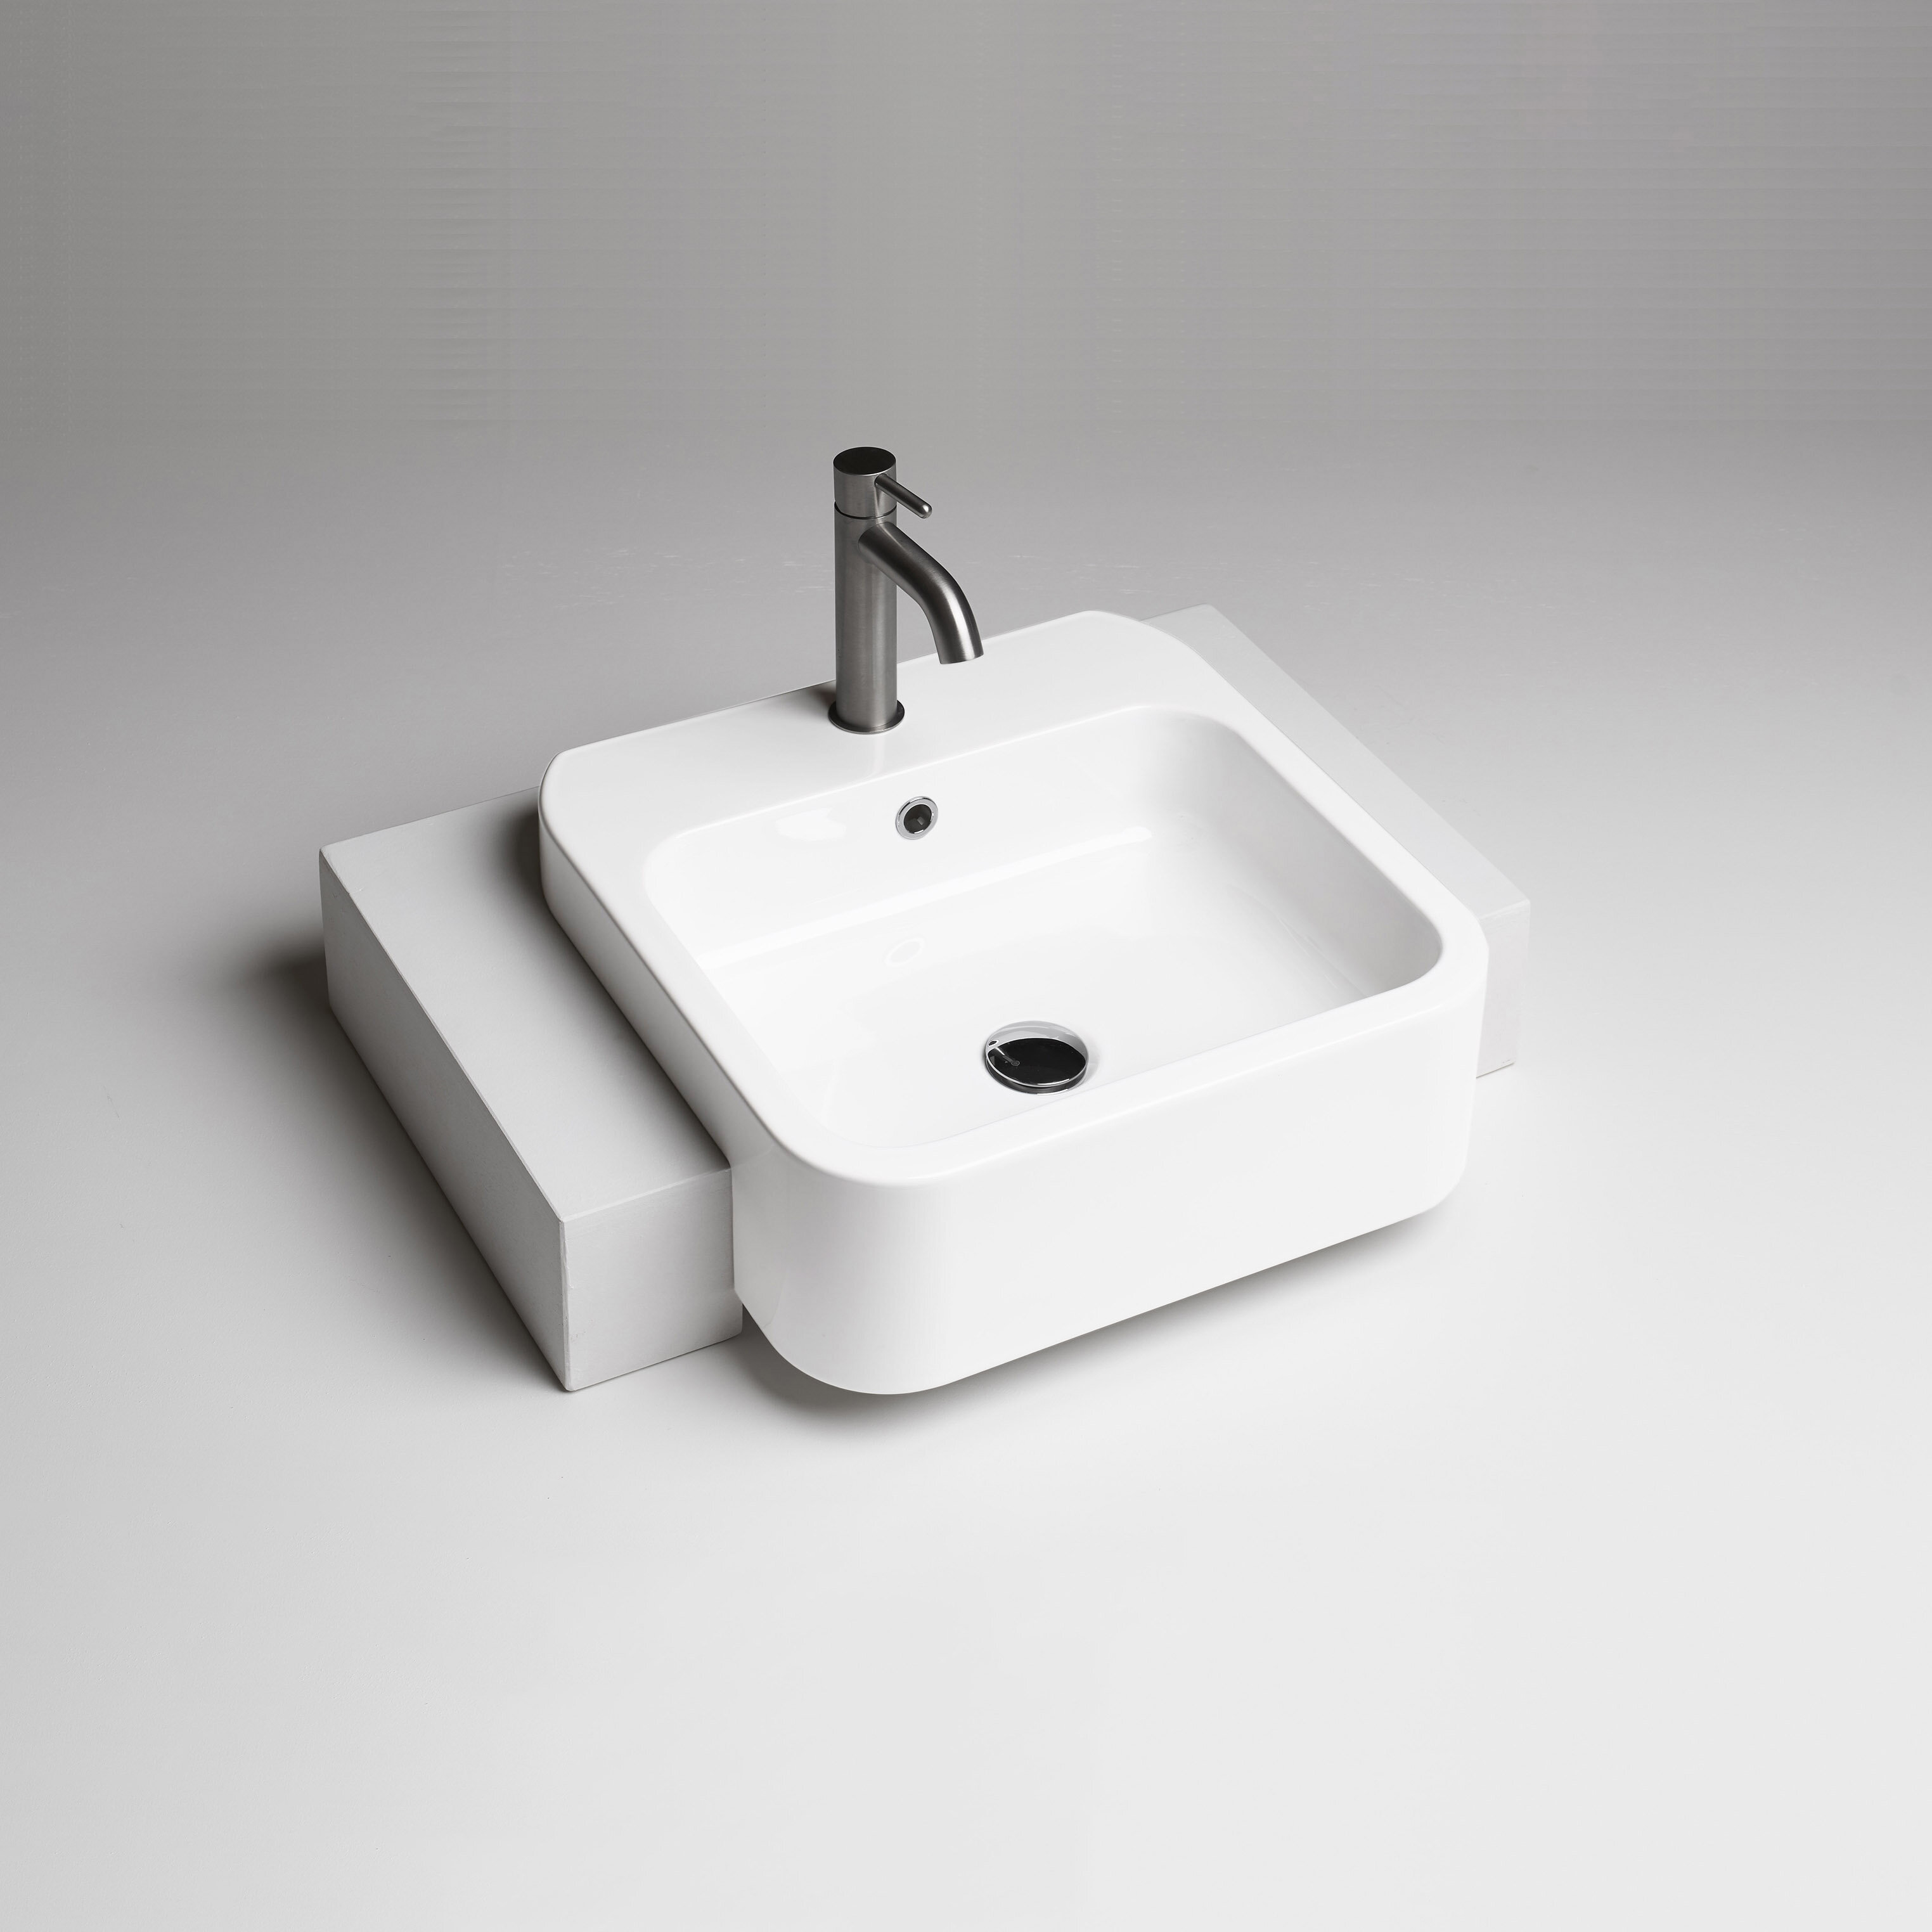 Ws Bath Collections Cosa Ceramic Rectangular Semi Recessed Vessel Bathroom Sink With Overflow Wayfair